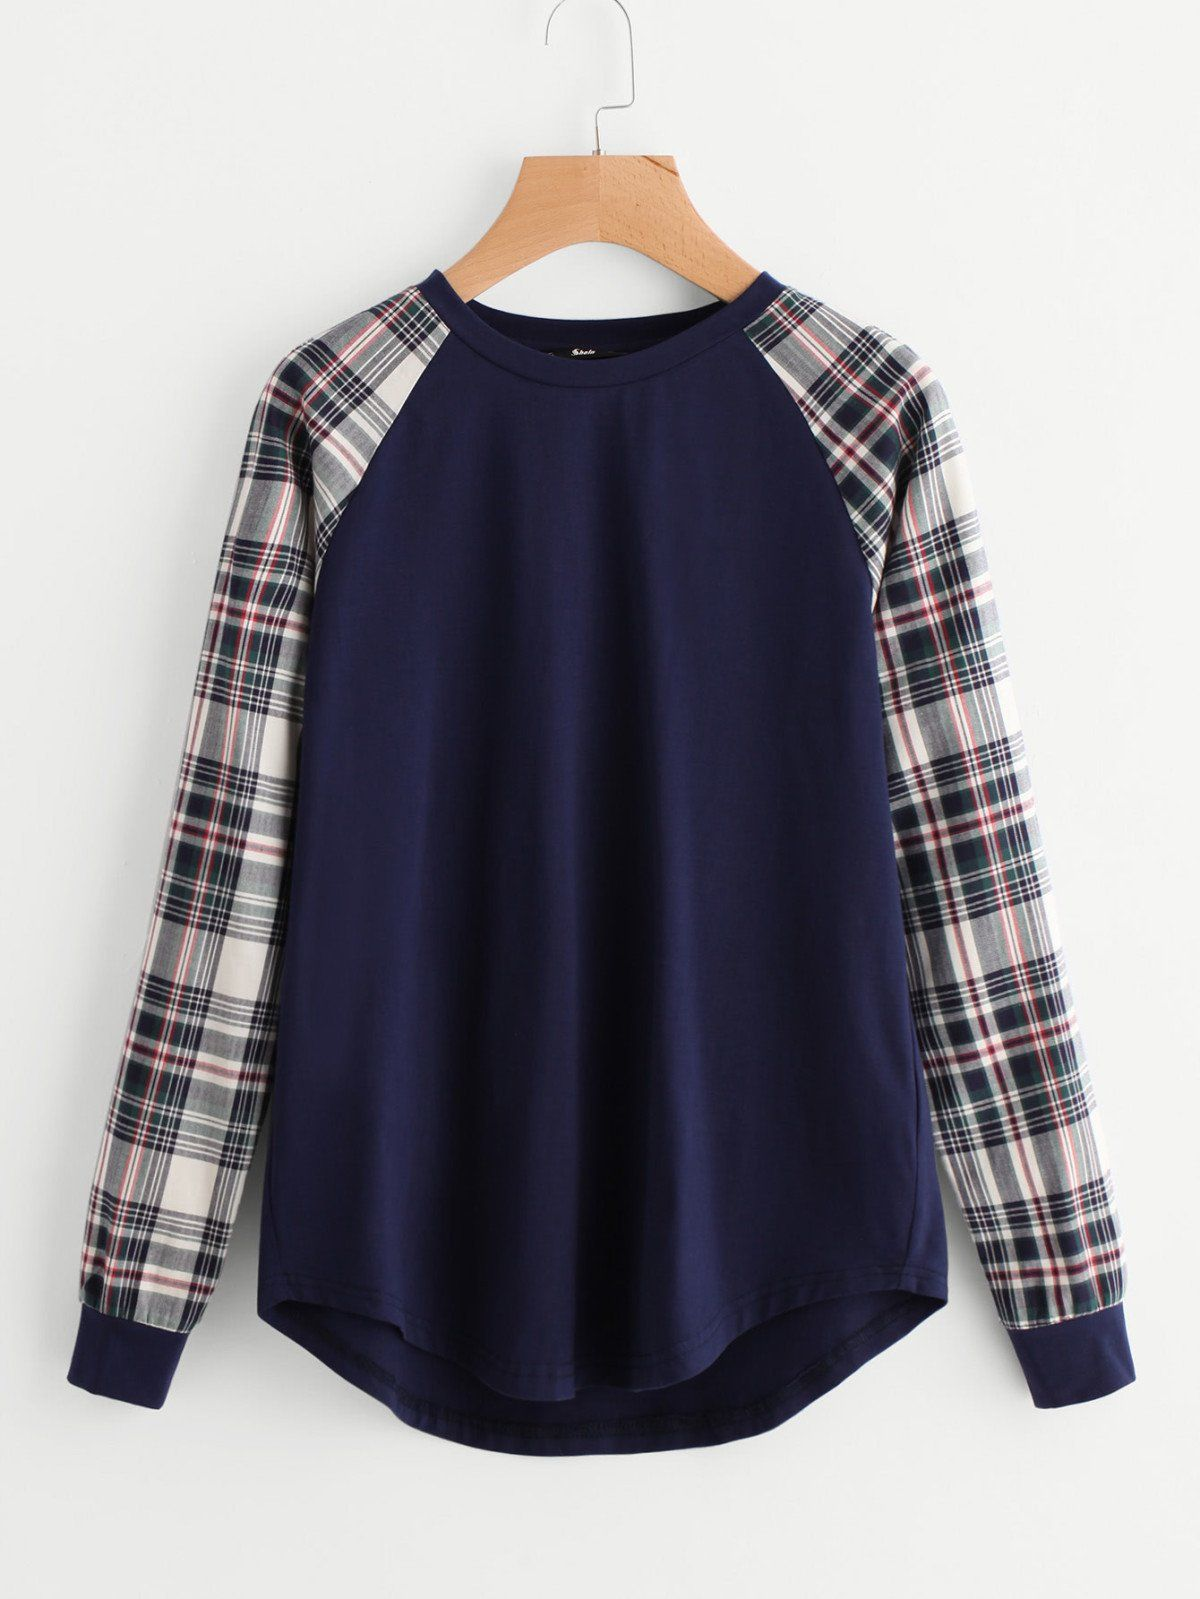 Flannel with shirt underneath  Contrast Check Raglan Sleeve Curved Hem Tee  Curves Check and